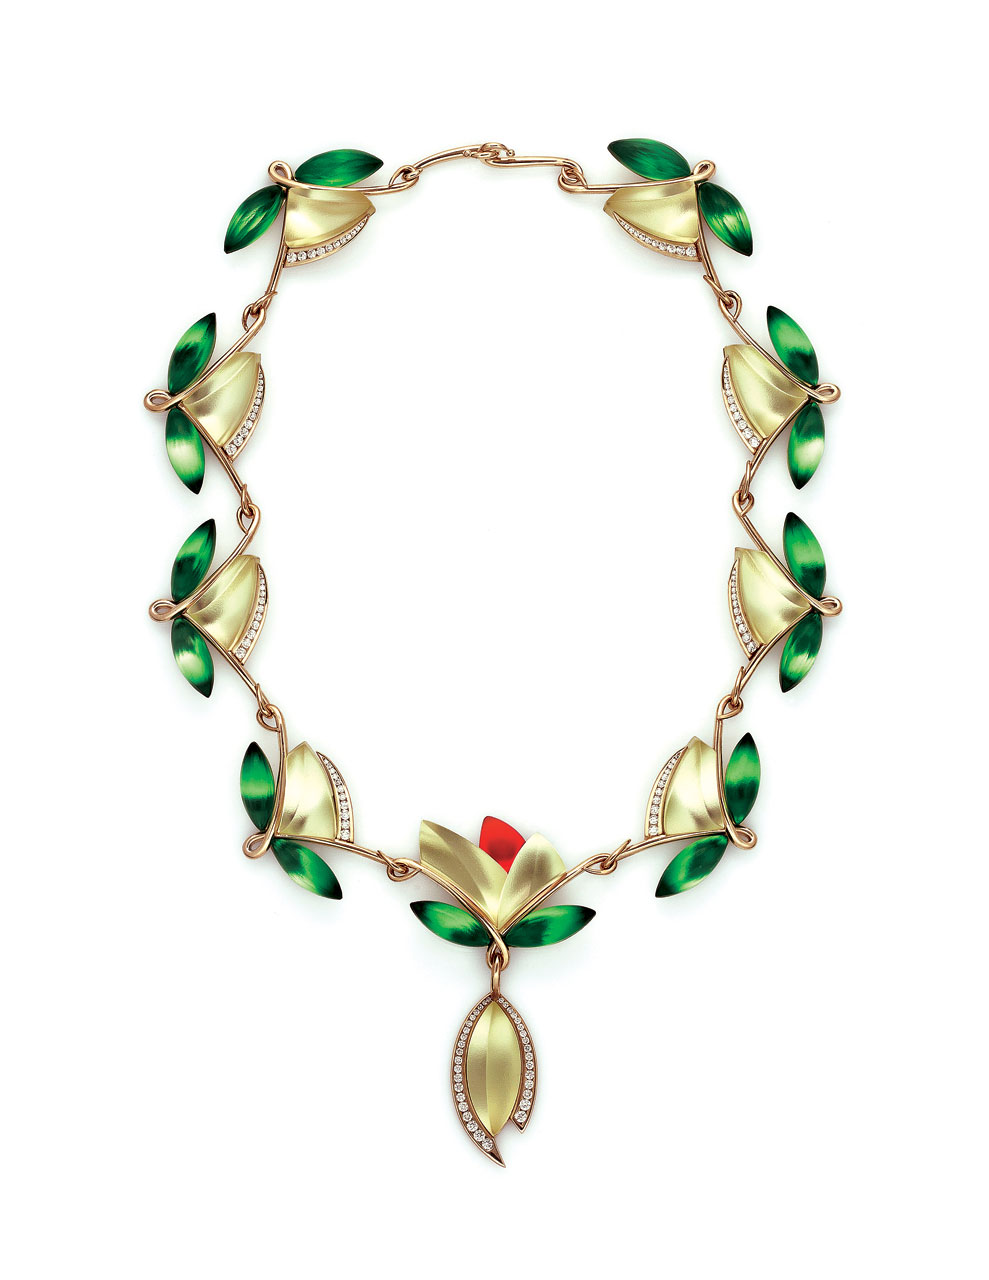 PRIMAVERA NECKLACE, FLORAL SERIES NO. 98 of acid polished, light yellow, green, red, mirrored glass, eighteen karat yellow gold, white diamond detail, 15.2 centimeters diameter, pendant 7.6 x 2.5 x 1.3 centimeters, 2015.